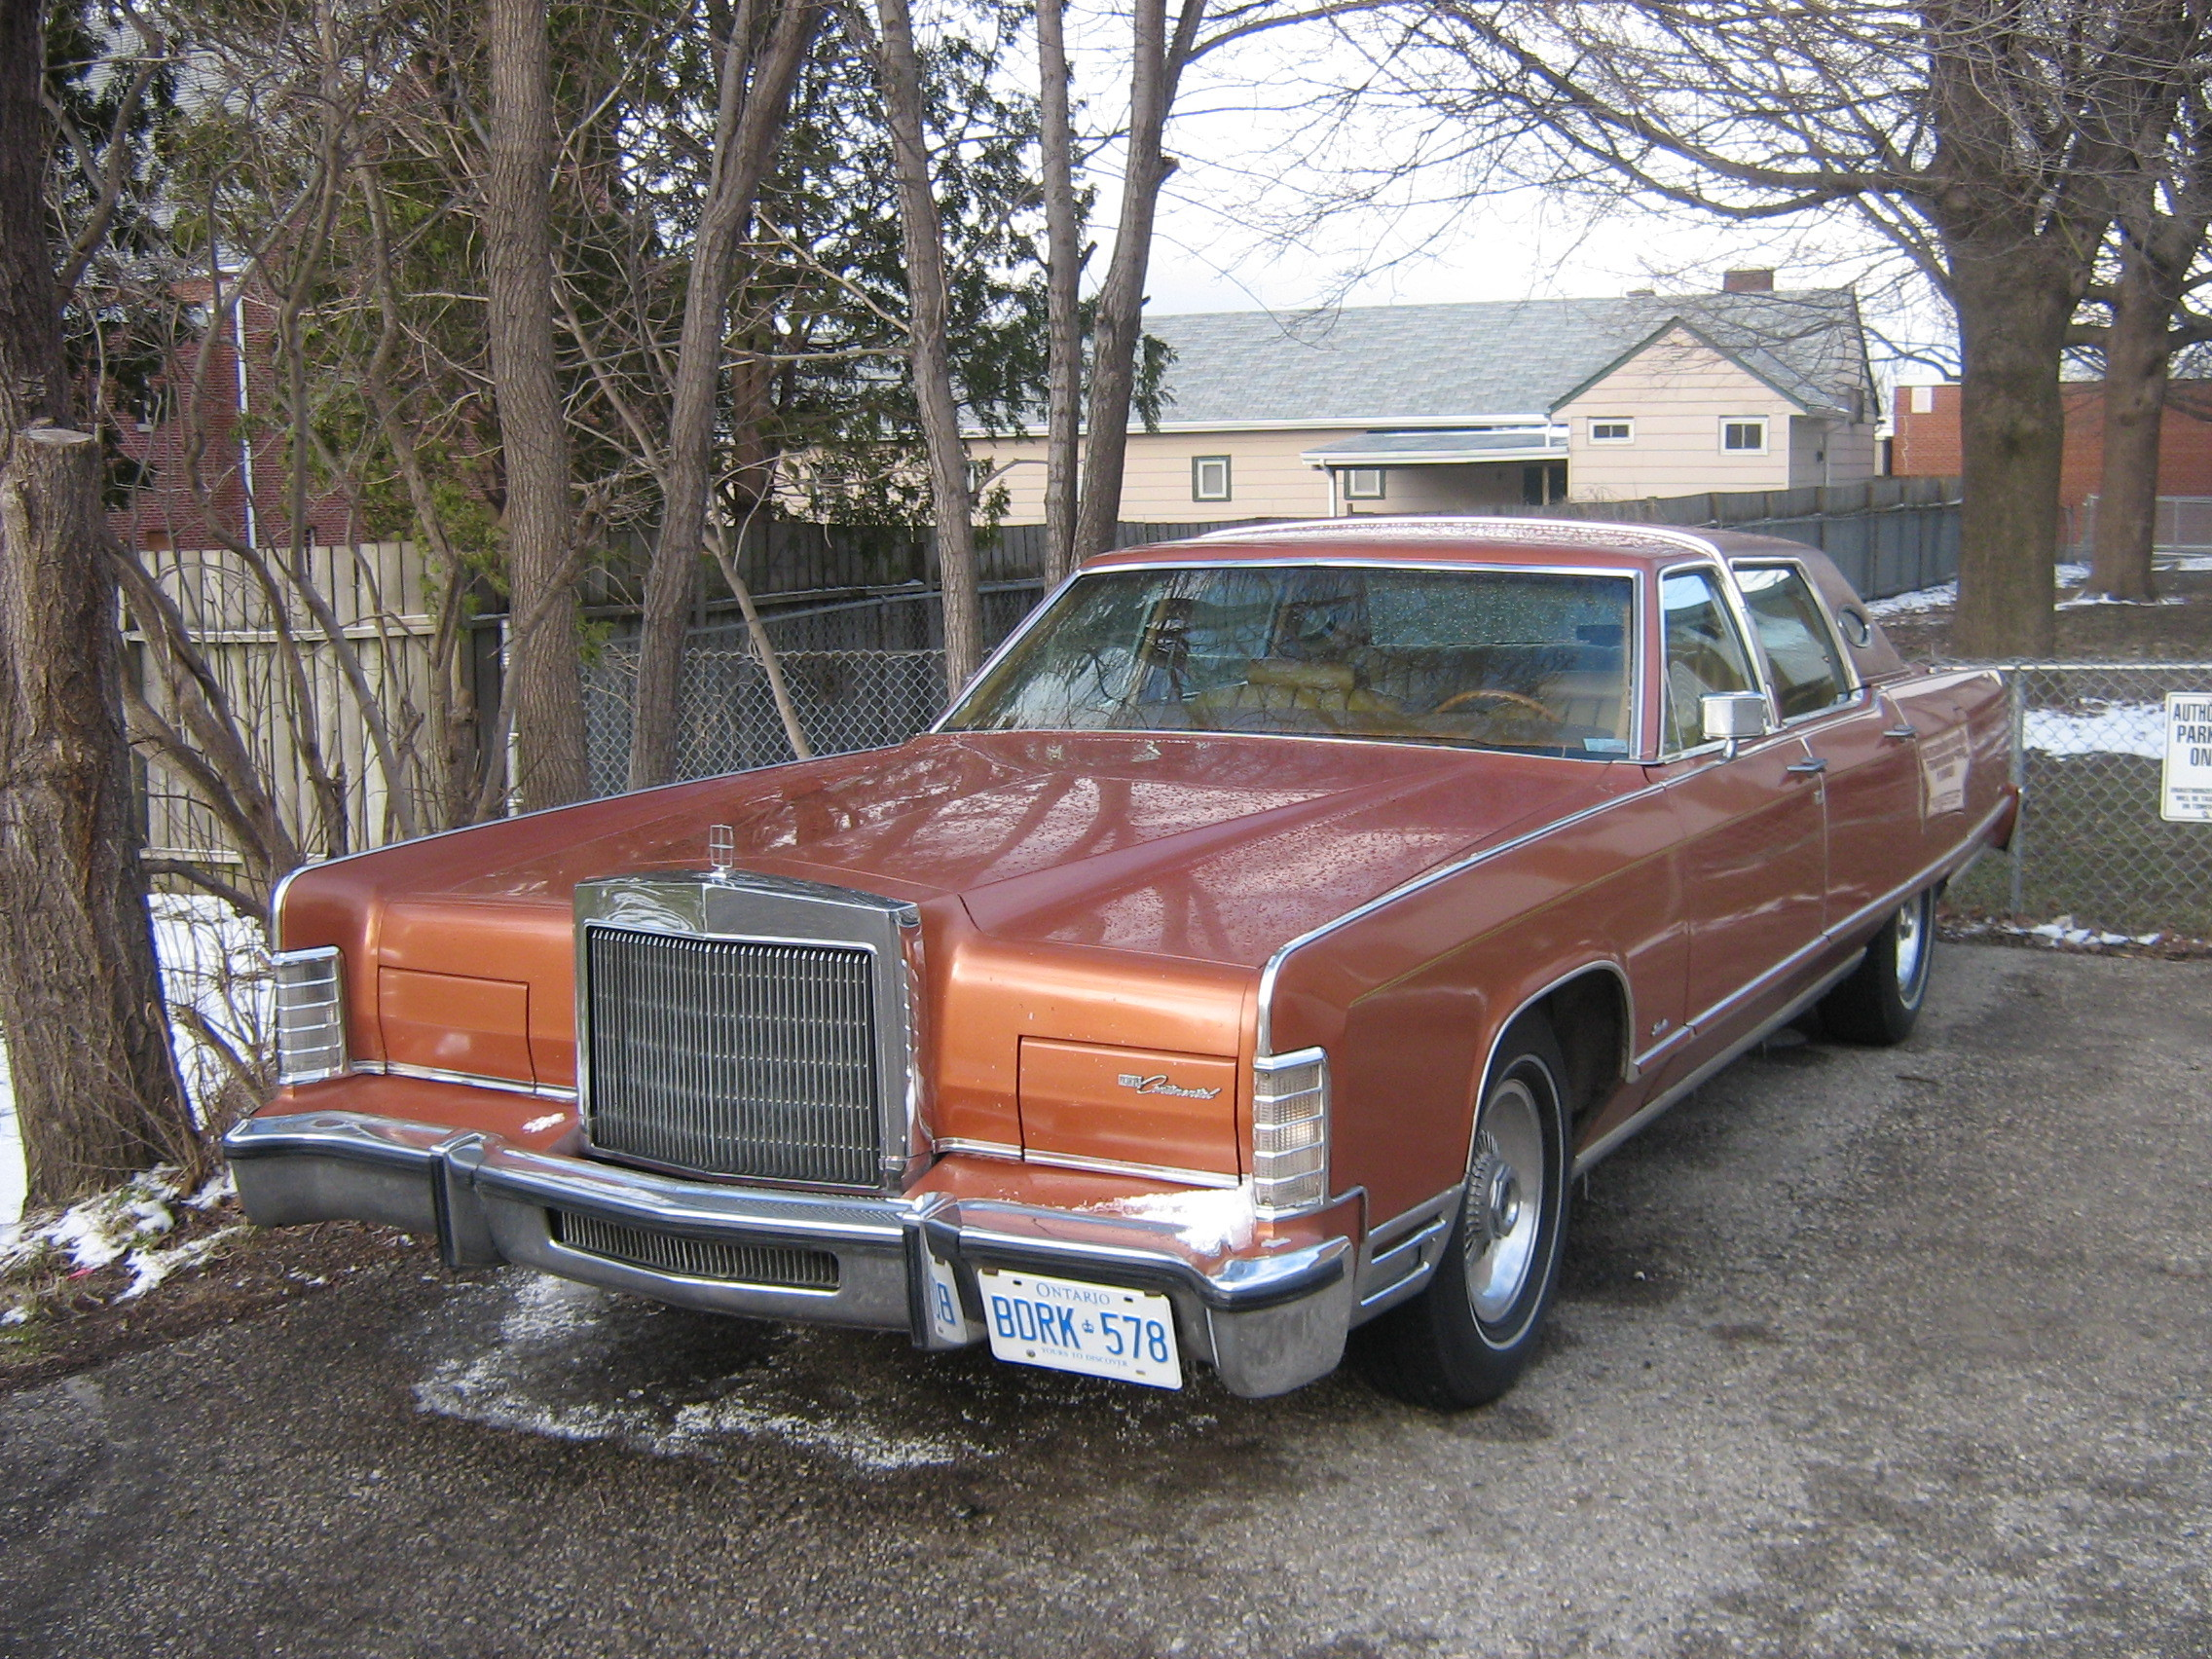 One_Fast_Omni's 1977 Lincoln Continental